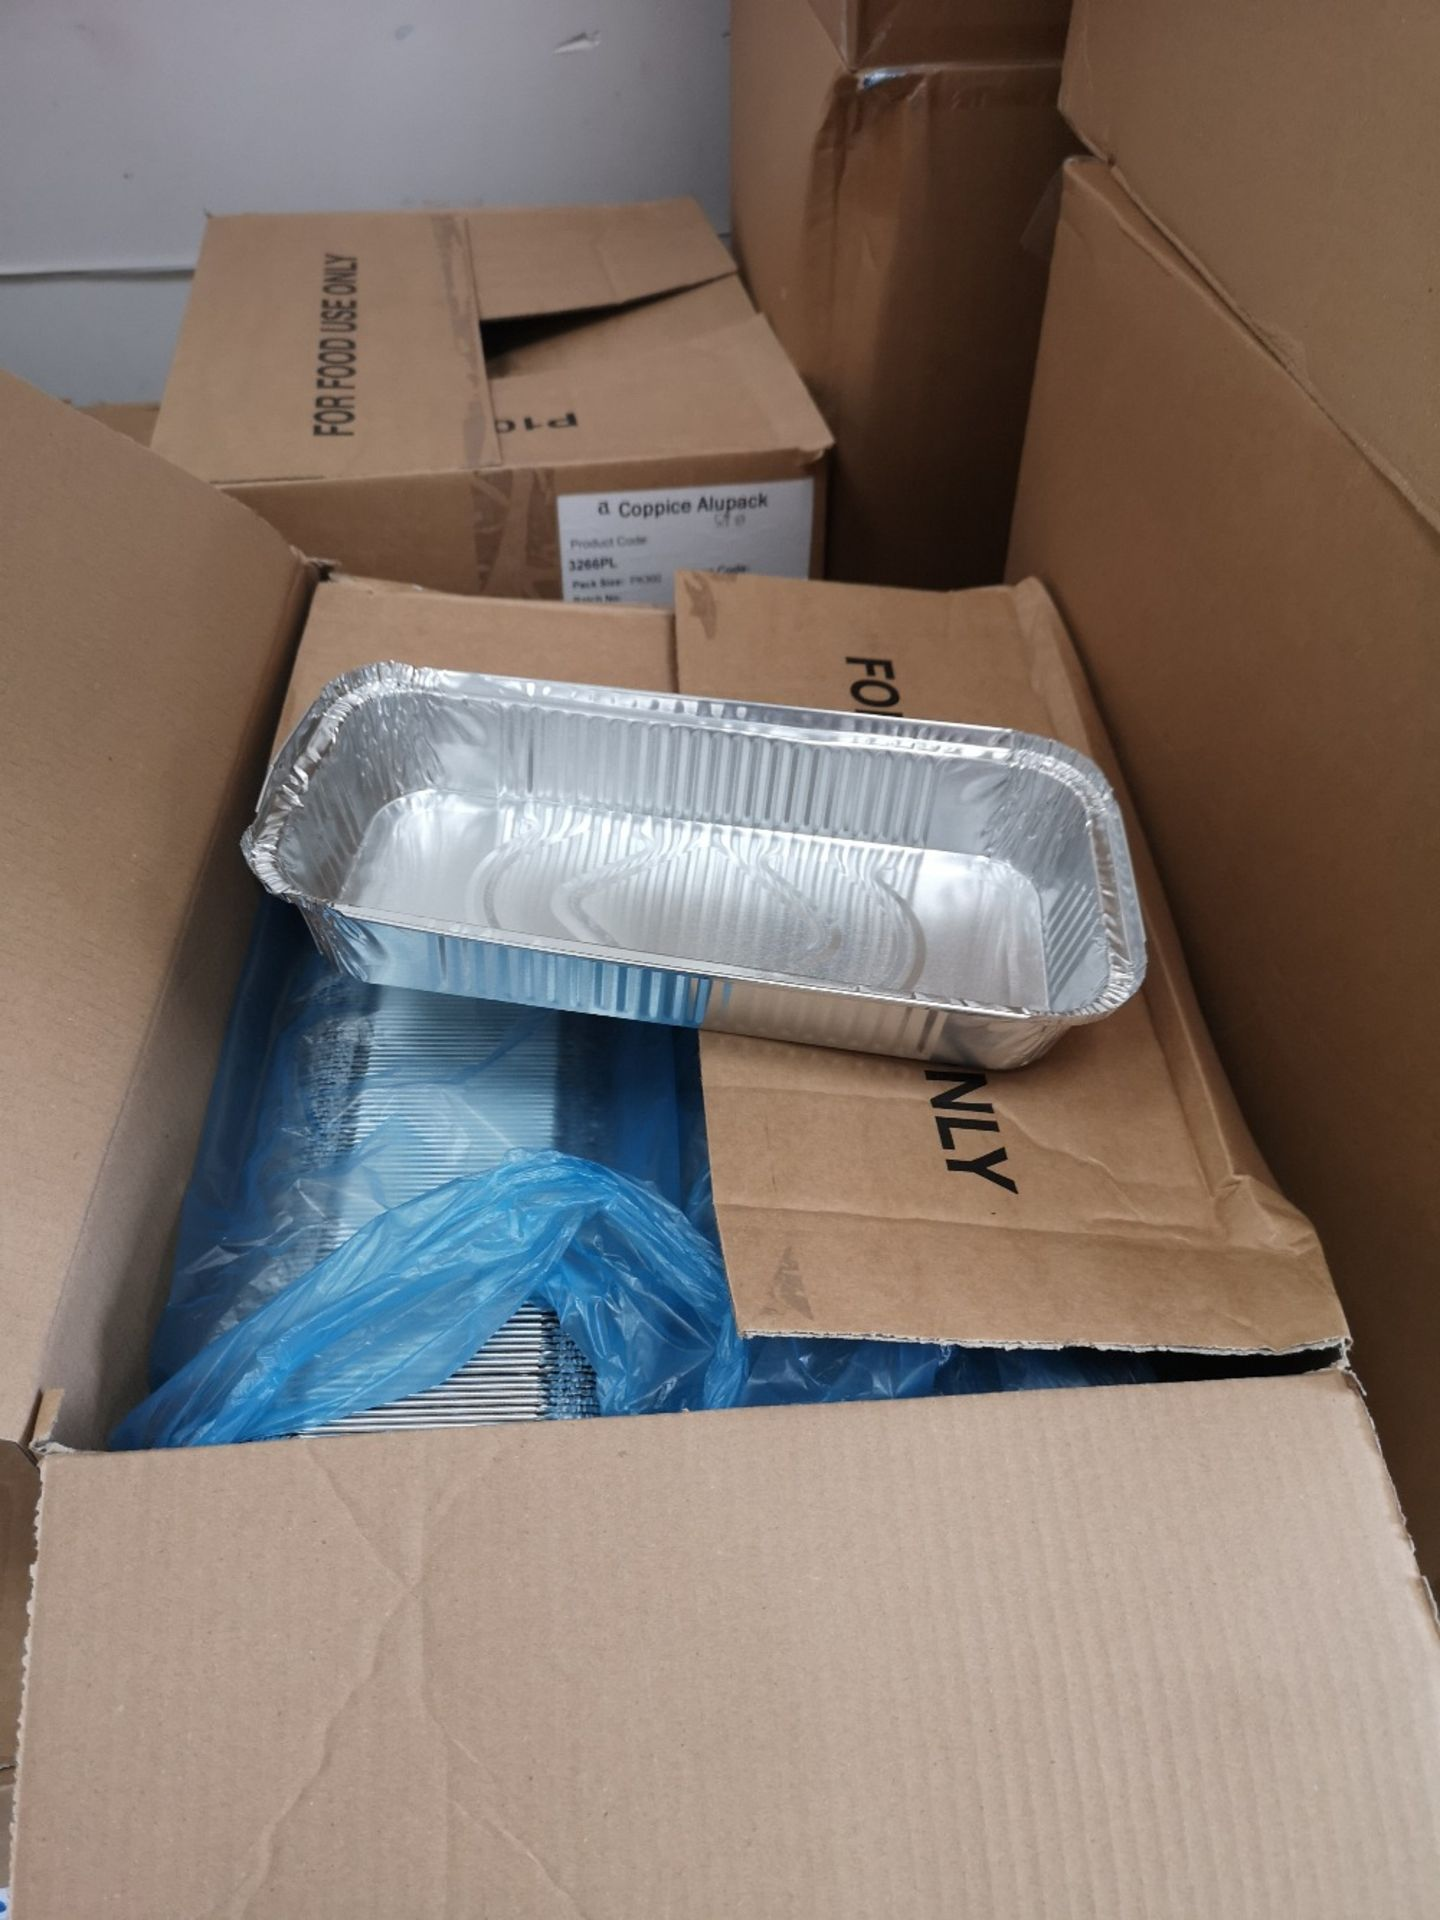 Pallet of Various Sized Foil Food Containers - Image 3 of 3